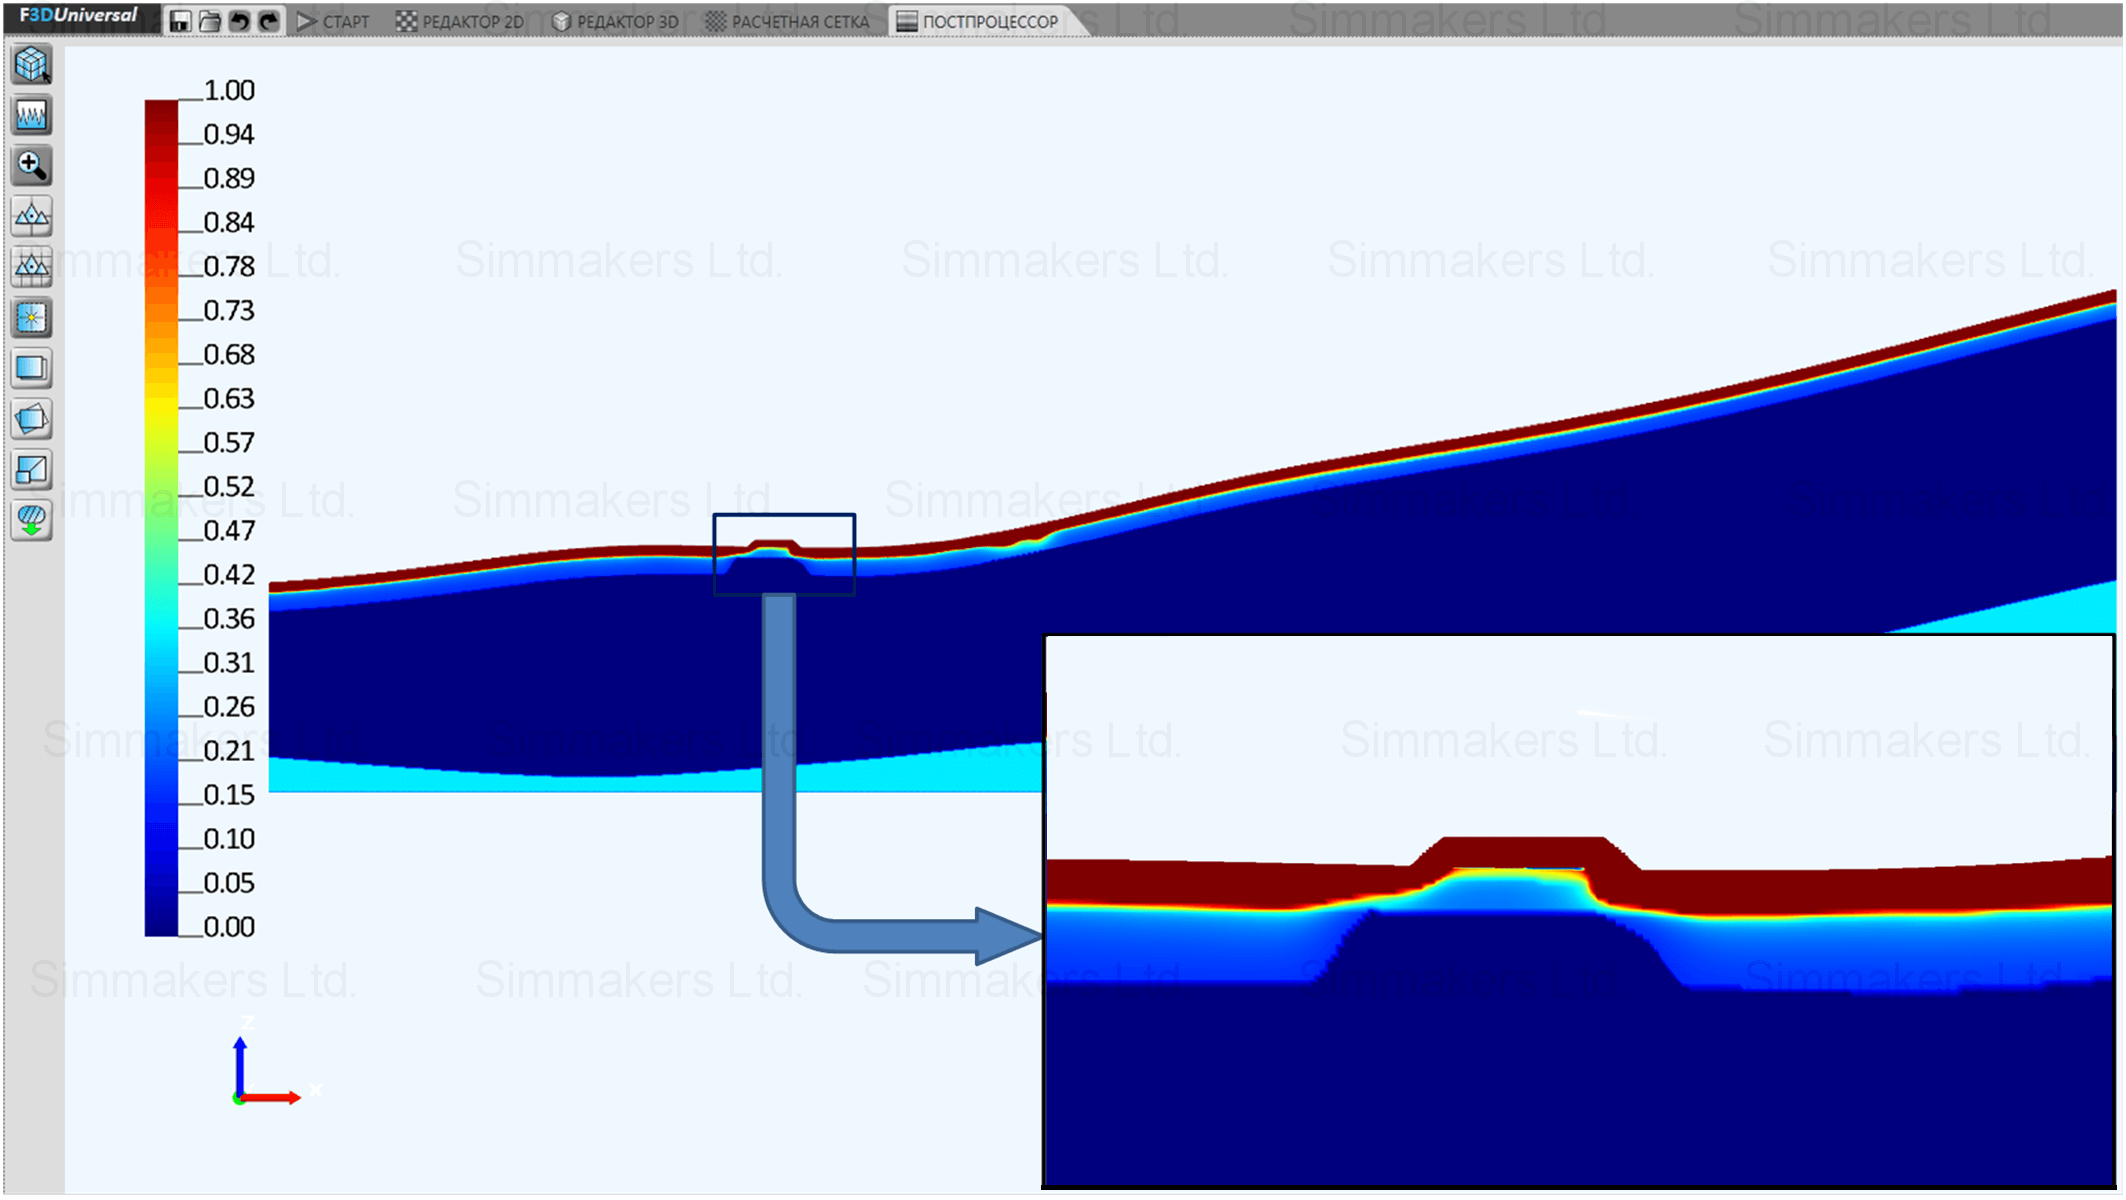 Relative unfrozen water content distribution after 2 years in summer, computational domain cross section